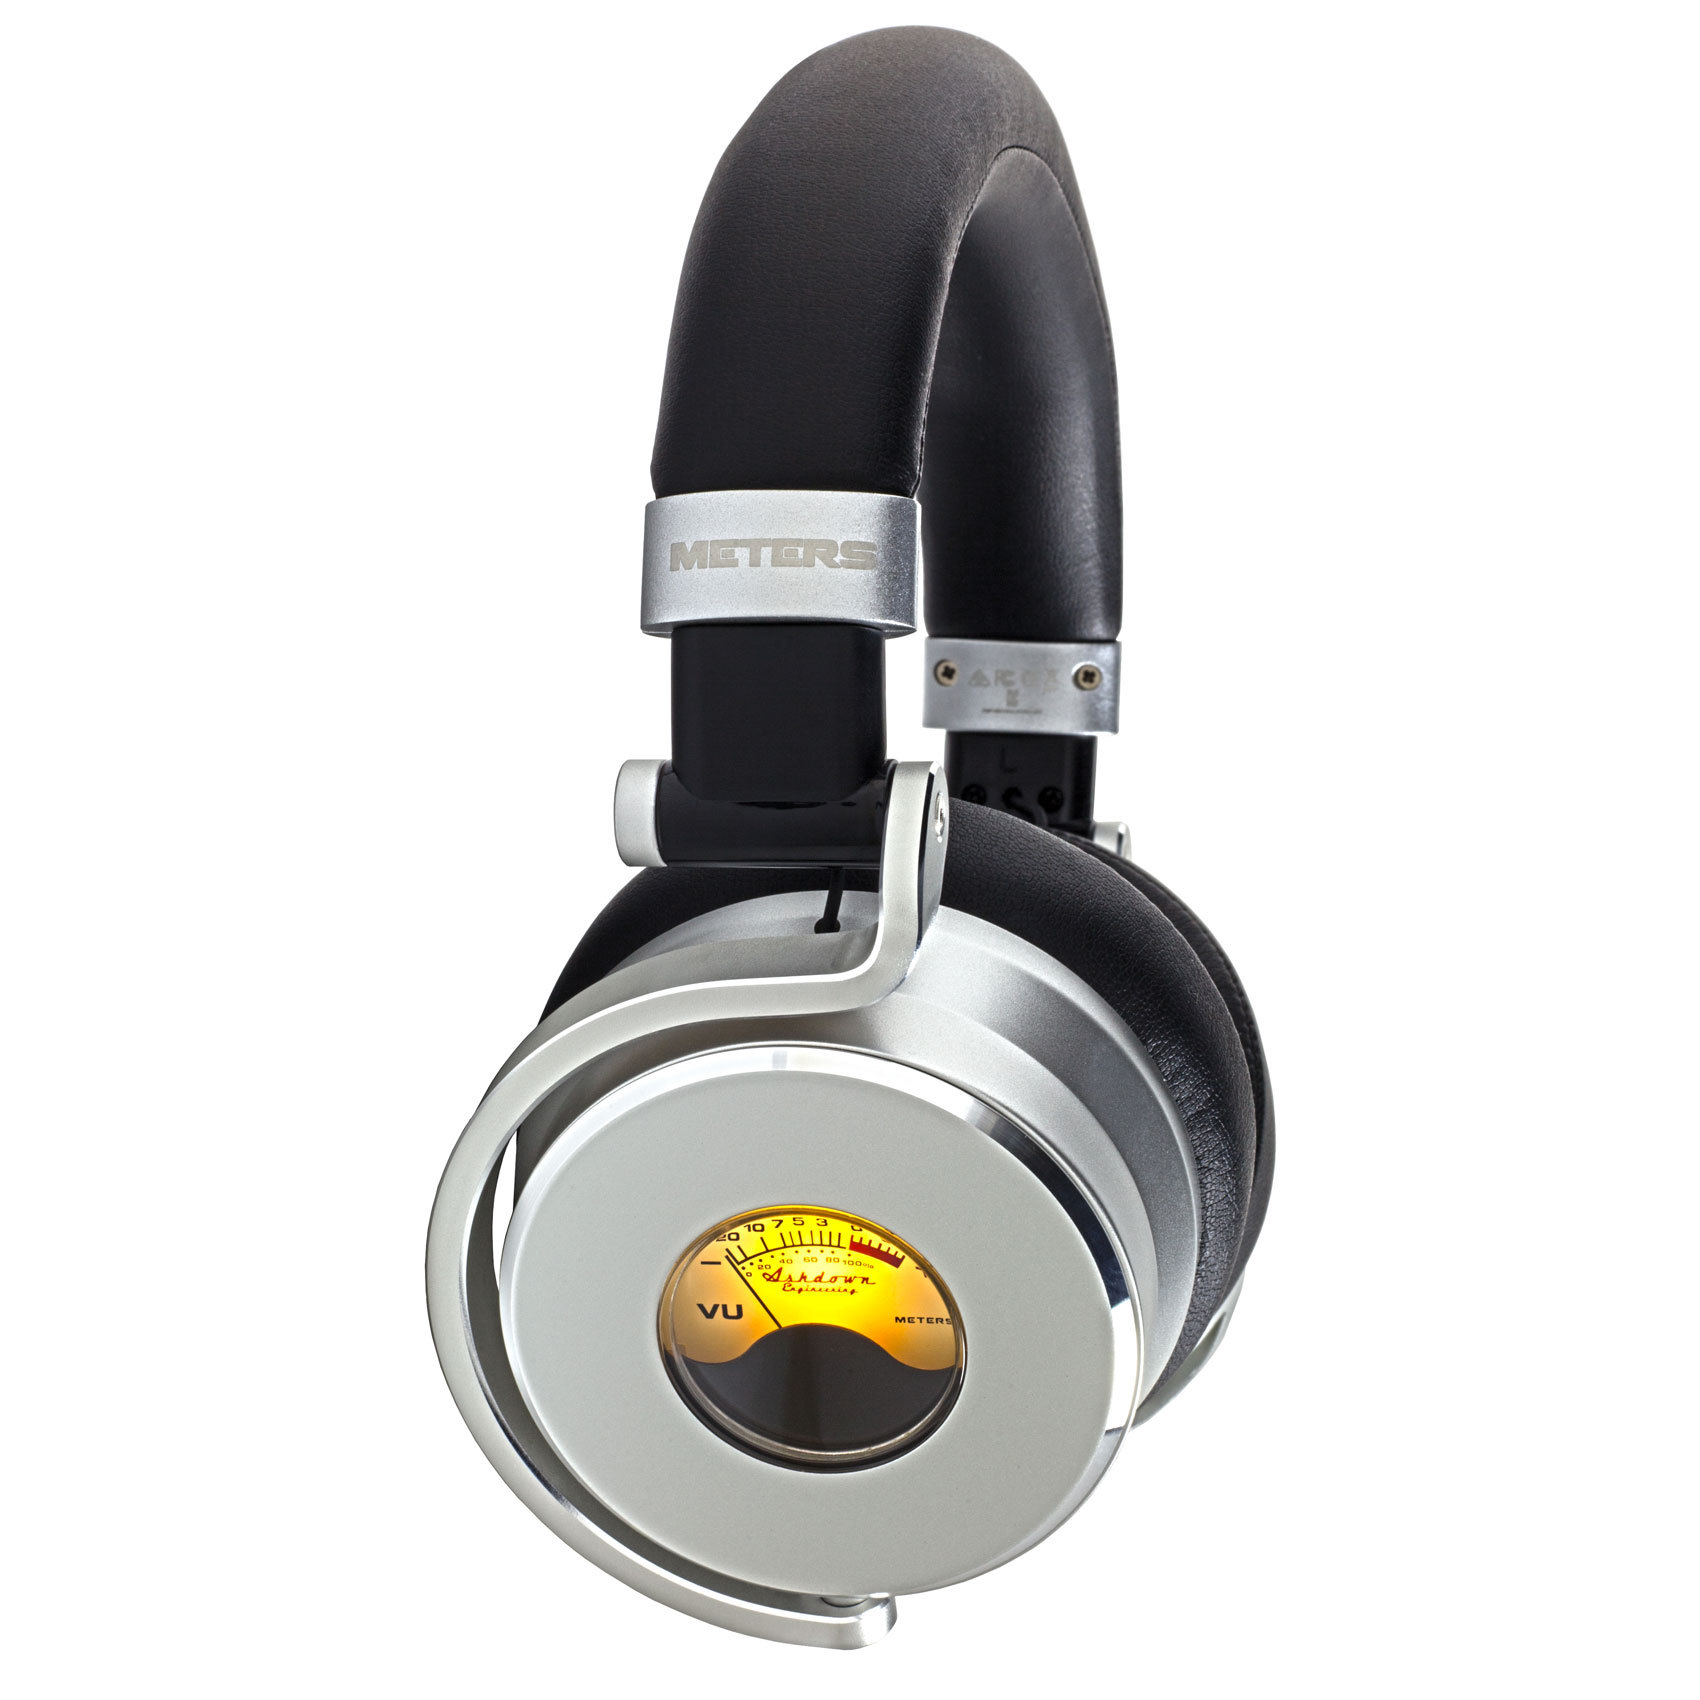 METERS HEADPHONE ANC OV-1-BLACK